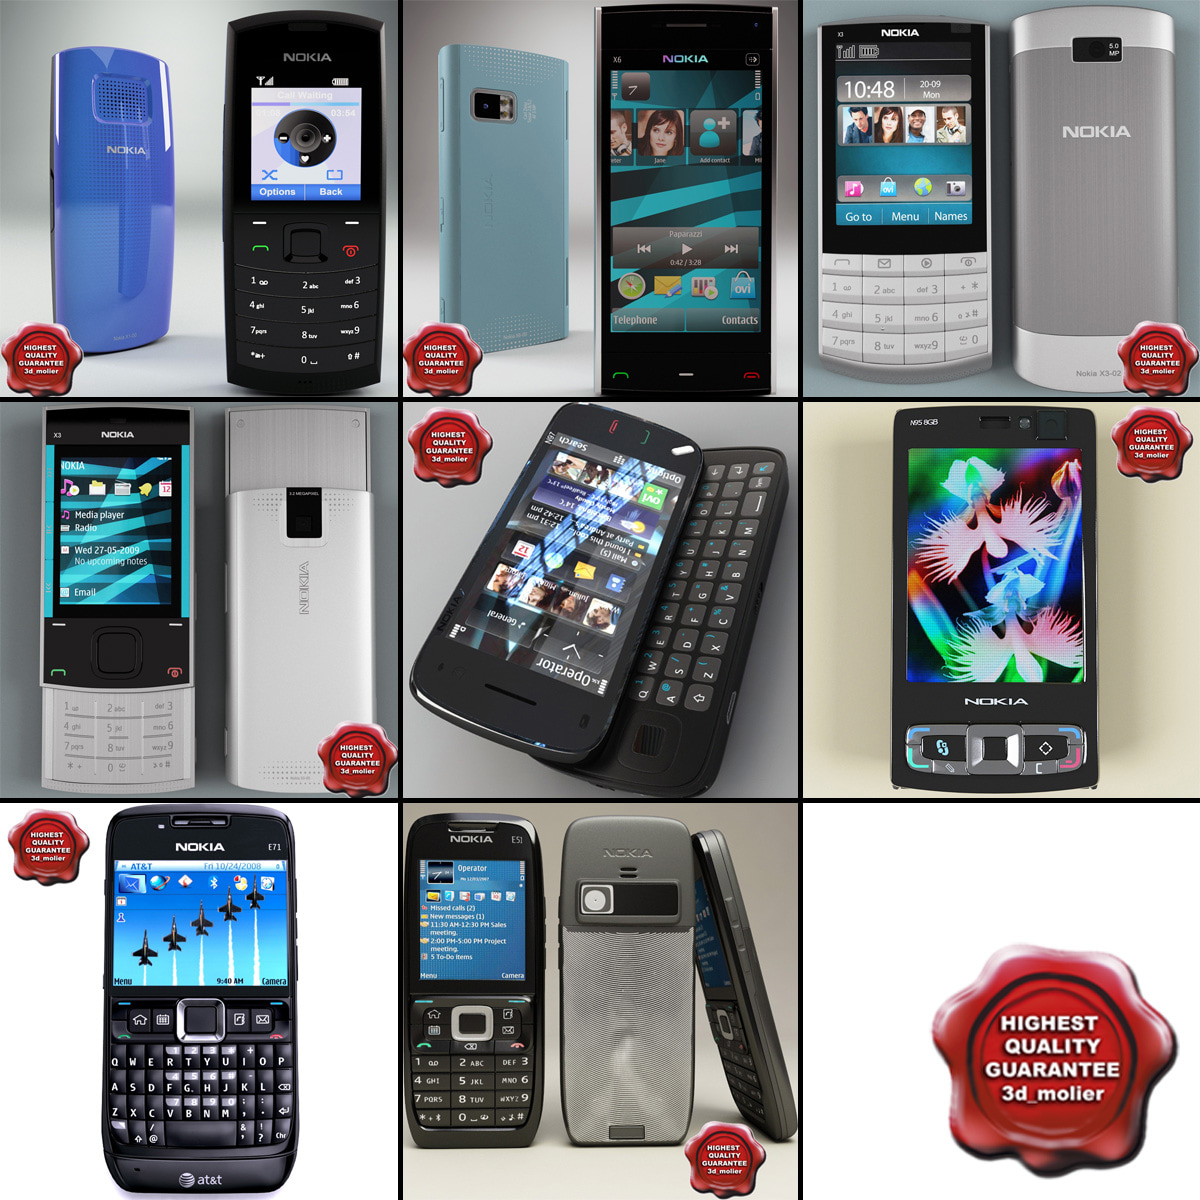 Nokia_Phones_Collection_V7_00.jpg